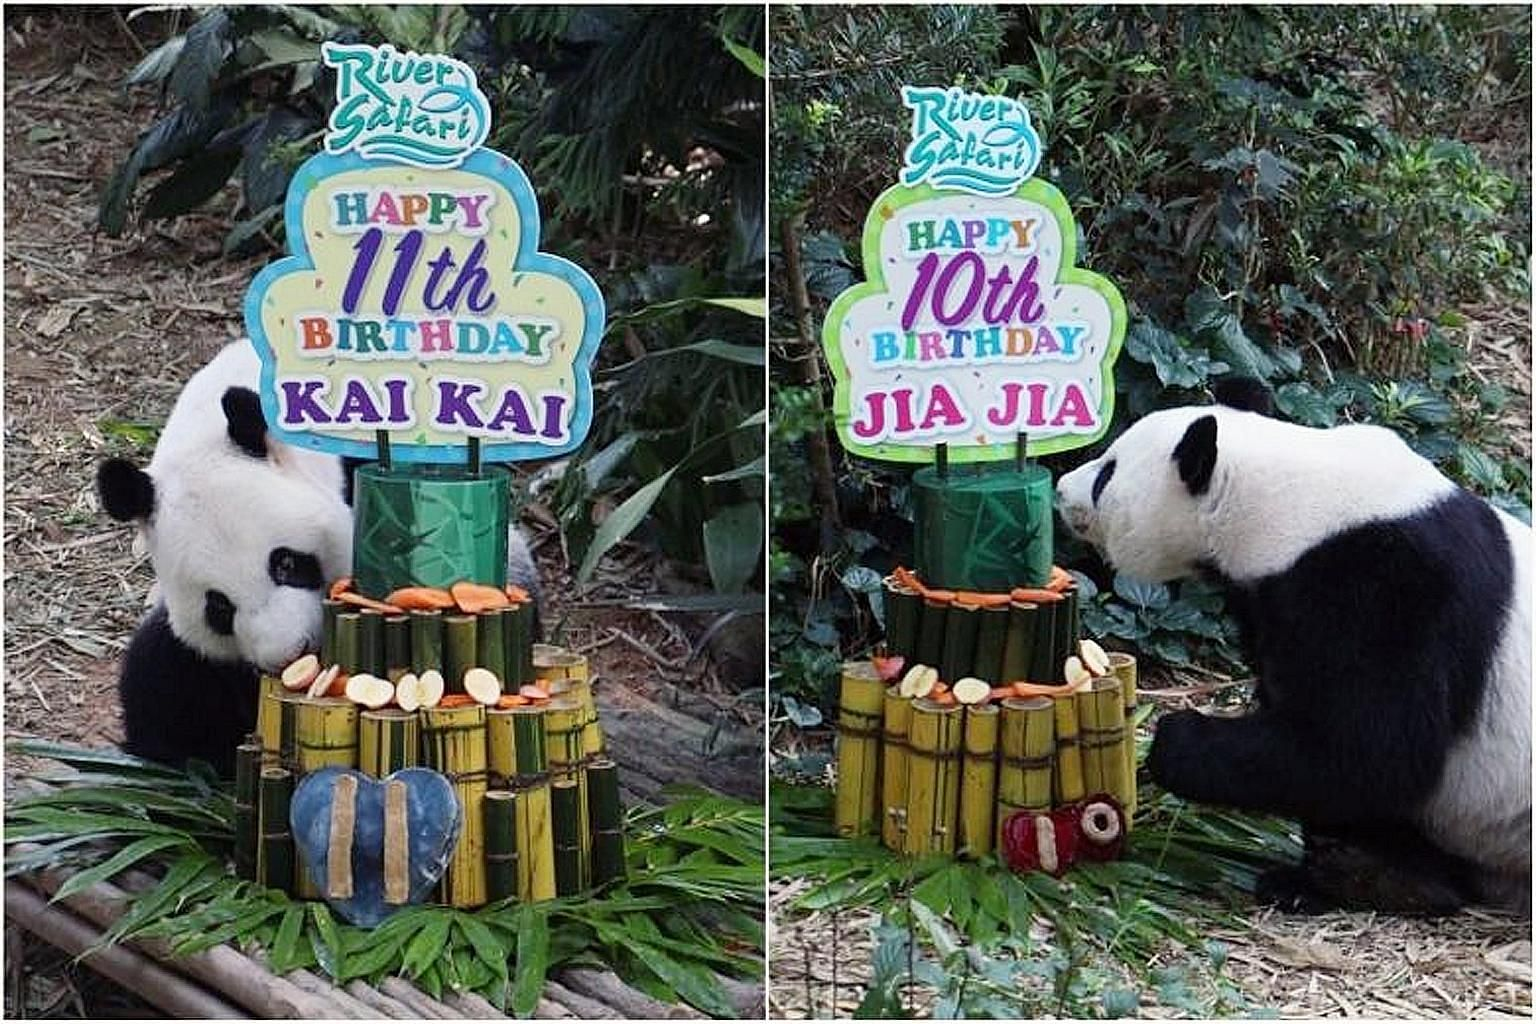 Bamboo, apples and carrots are not your usual ingredients for a birthday cake. They were, however, the perfect birthday surprise for River Safari's famous panda couple Kai Kai and Jia Jia, as the pair entered the Giant Forest enclosure yesterday morn